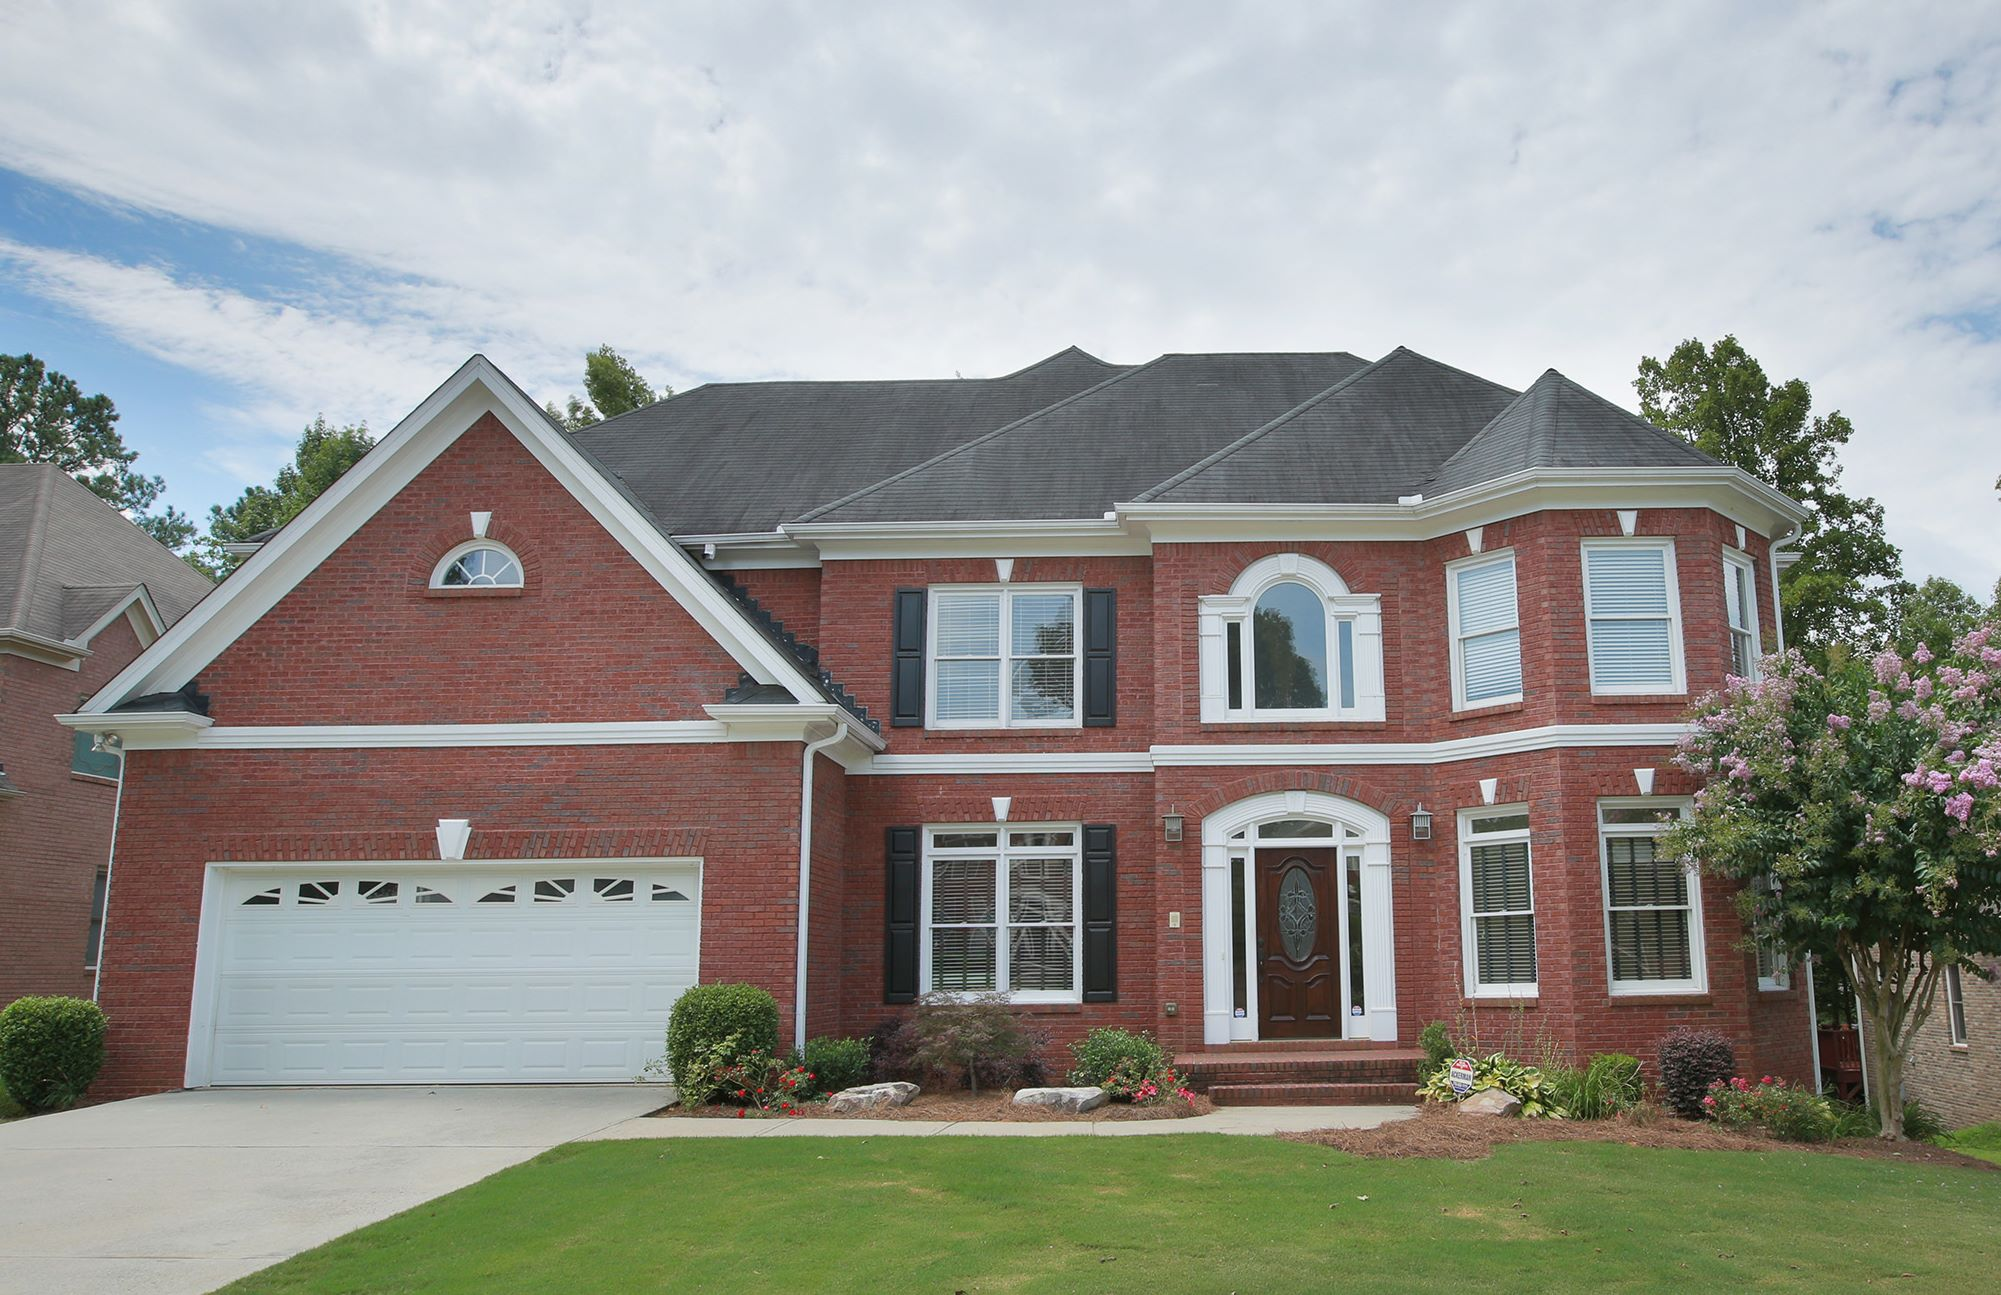 Single Family Home for Sale at Conveniently Located Traditional Brick 1023 Southerby Lane Alpharetta, Georgia 30004 United States